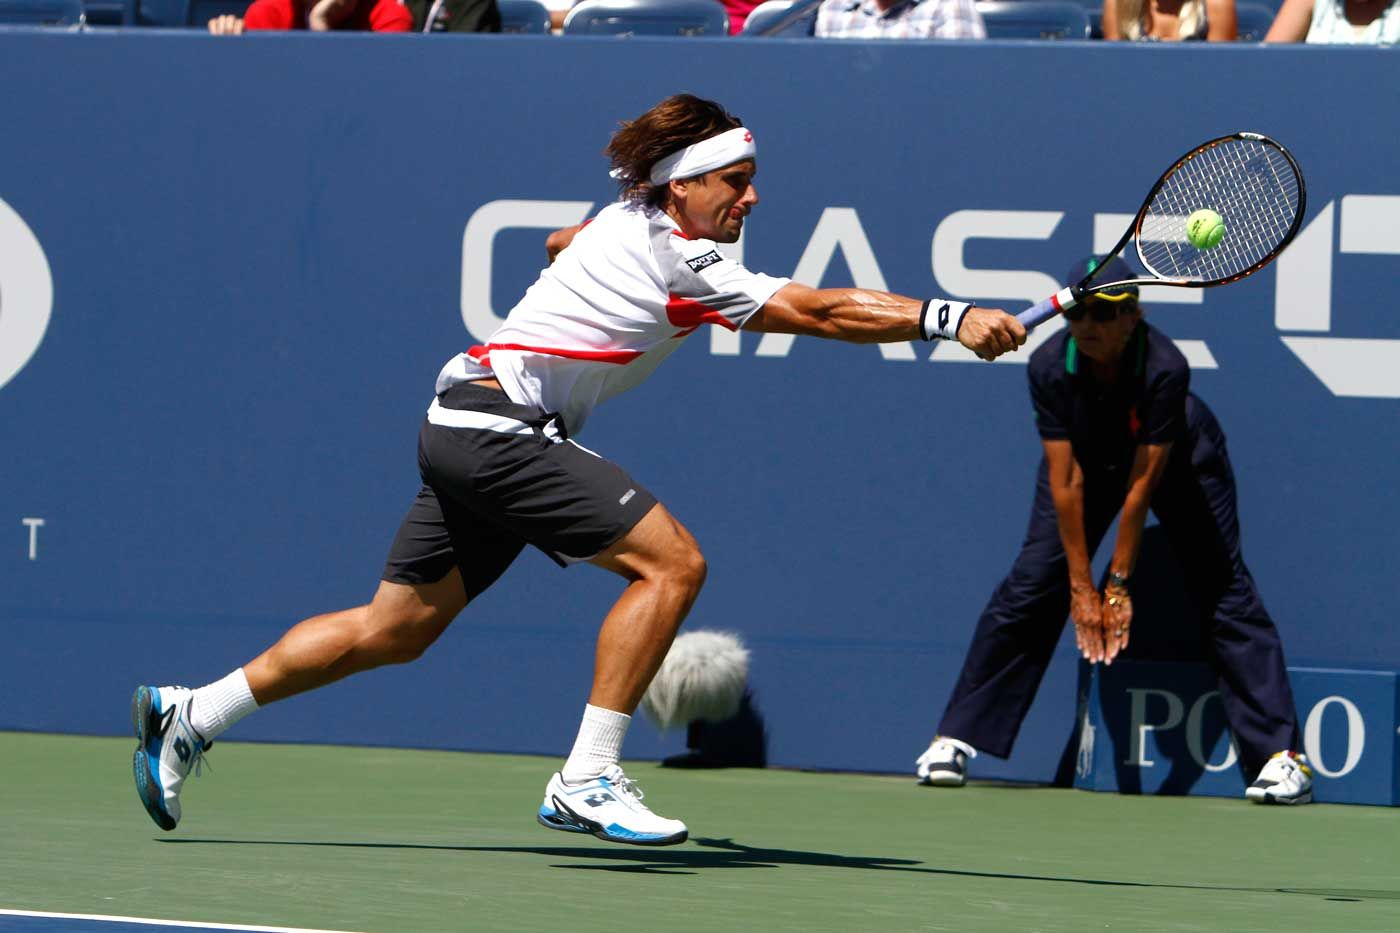 David Ferrer (ESP)[4] in action against Kevin Anderson (RSA) in the first round of the US Open. - Philip Hall/USTA